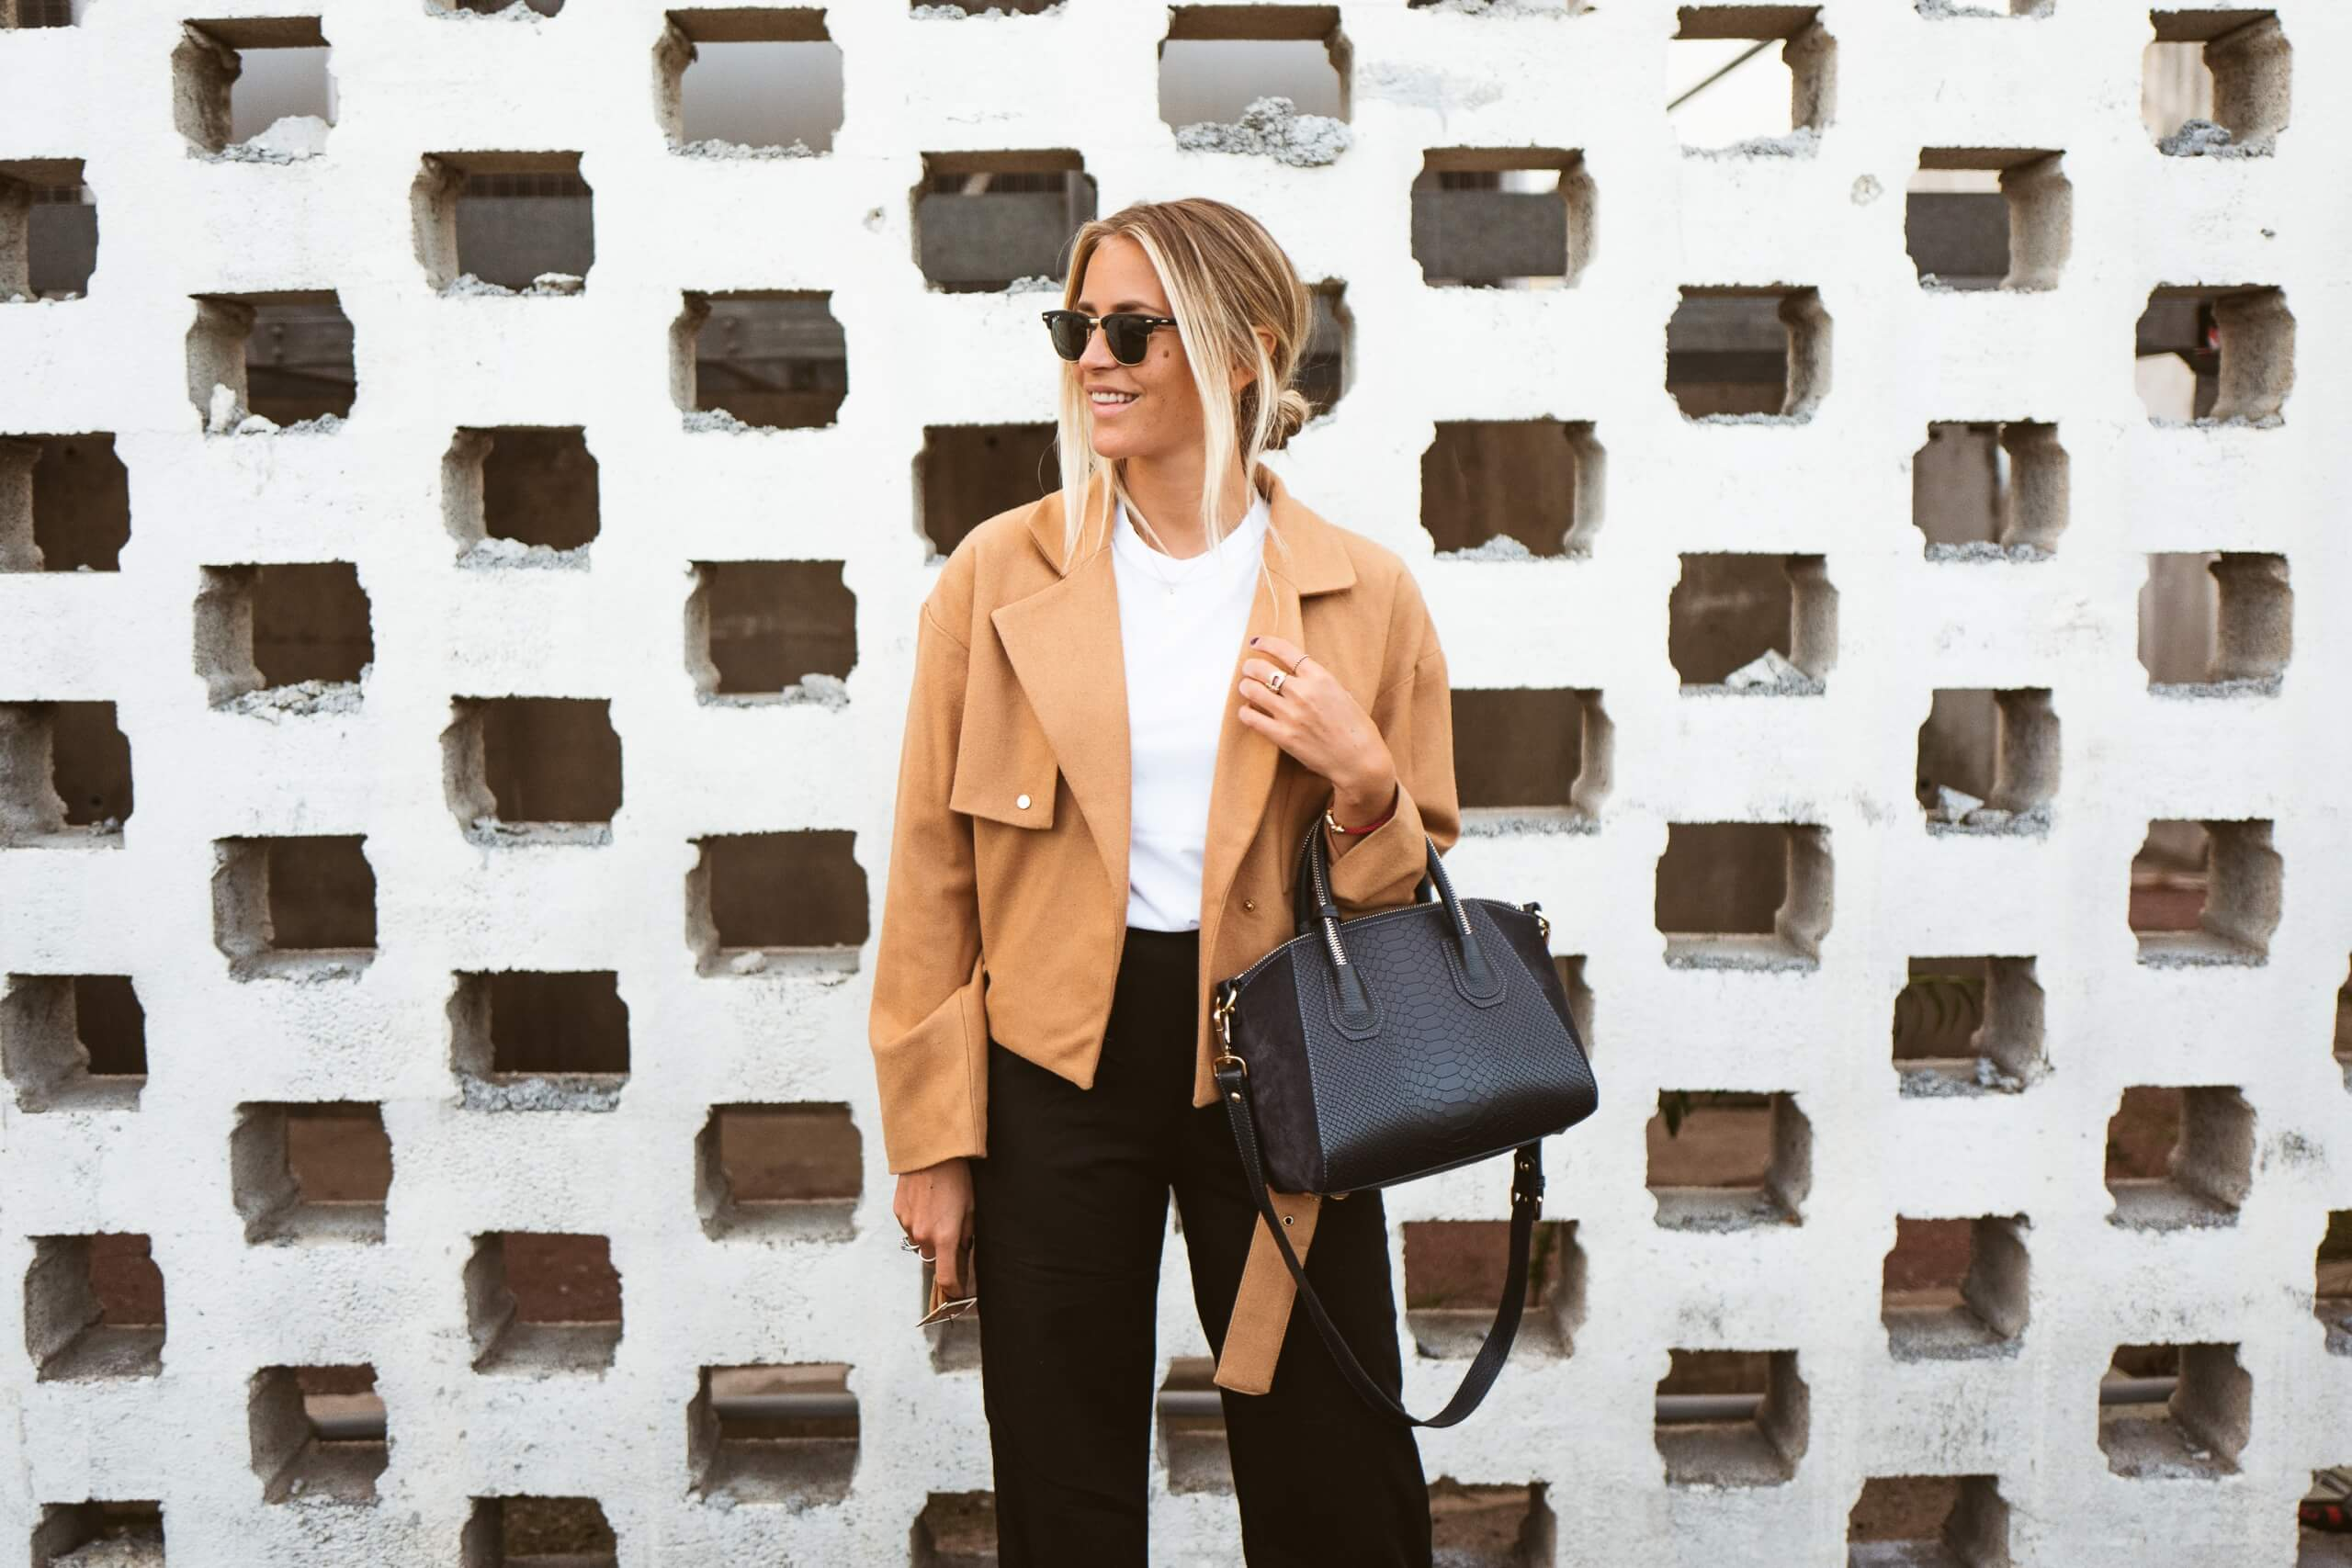 janni-deler-basics-1-of-1